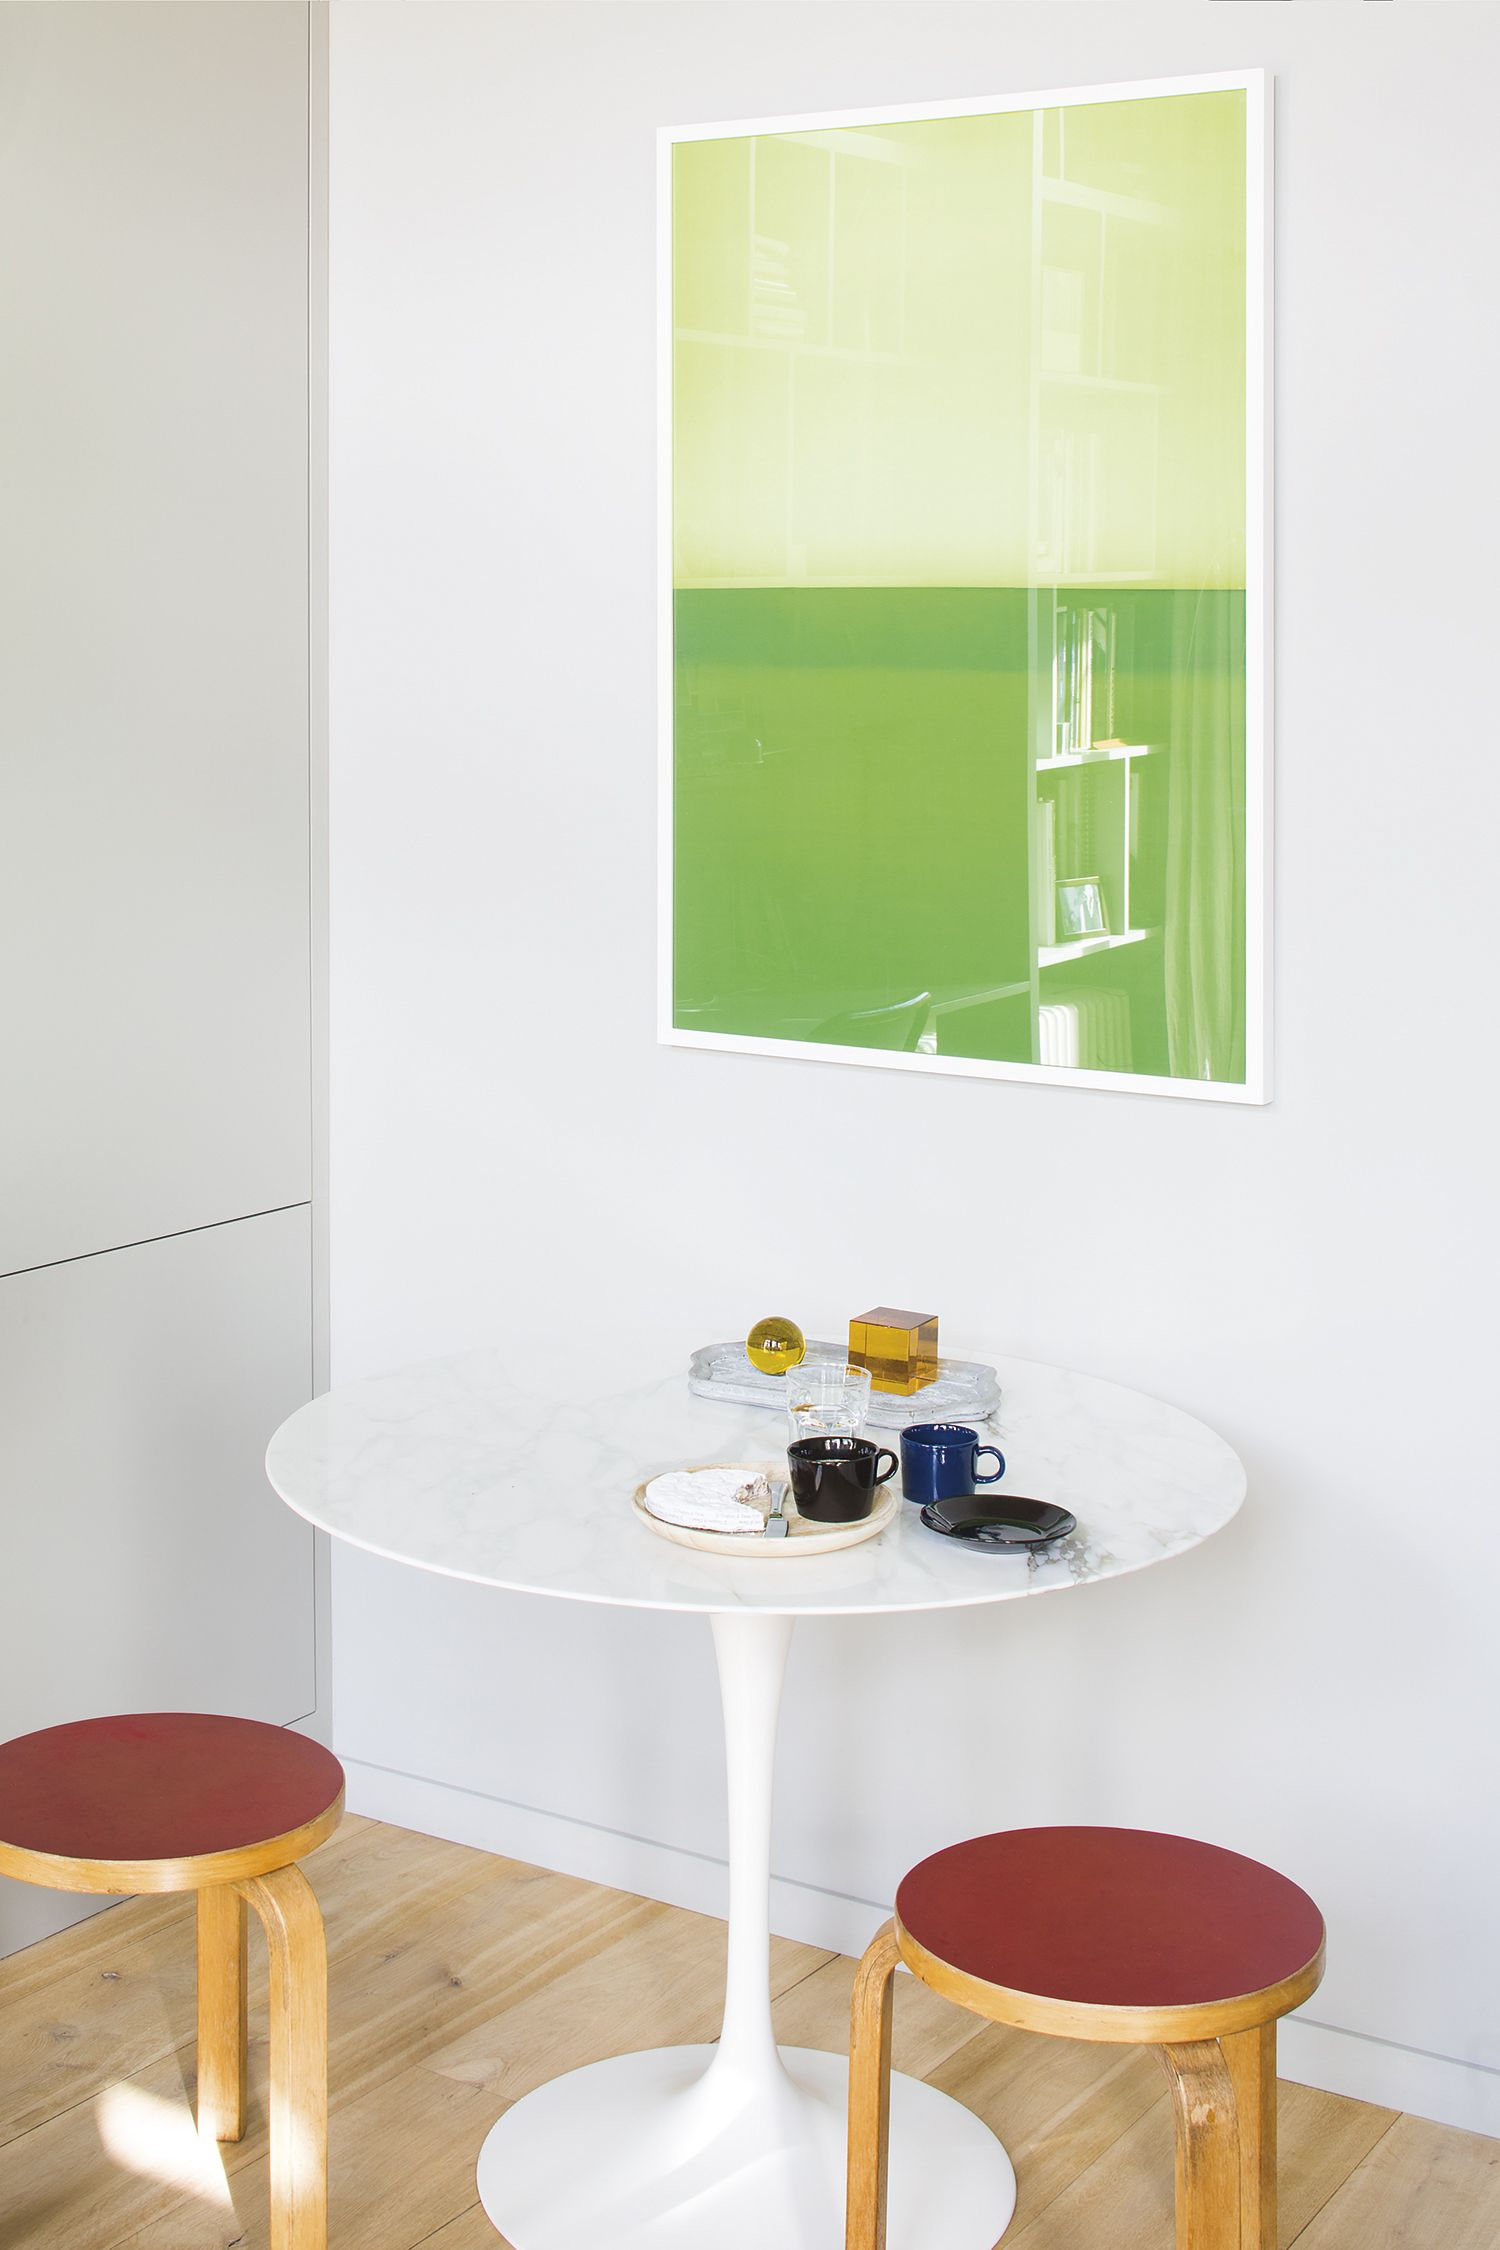 eero saarinen tulip table with white marble top and stool 60 by